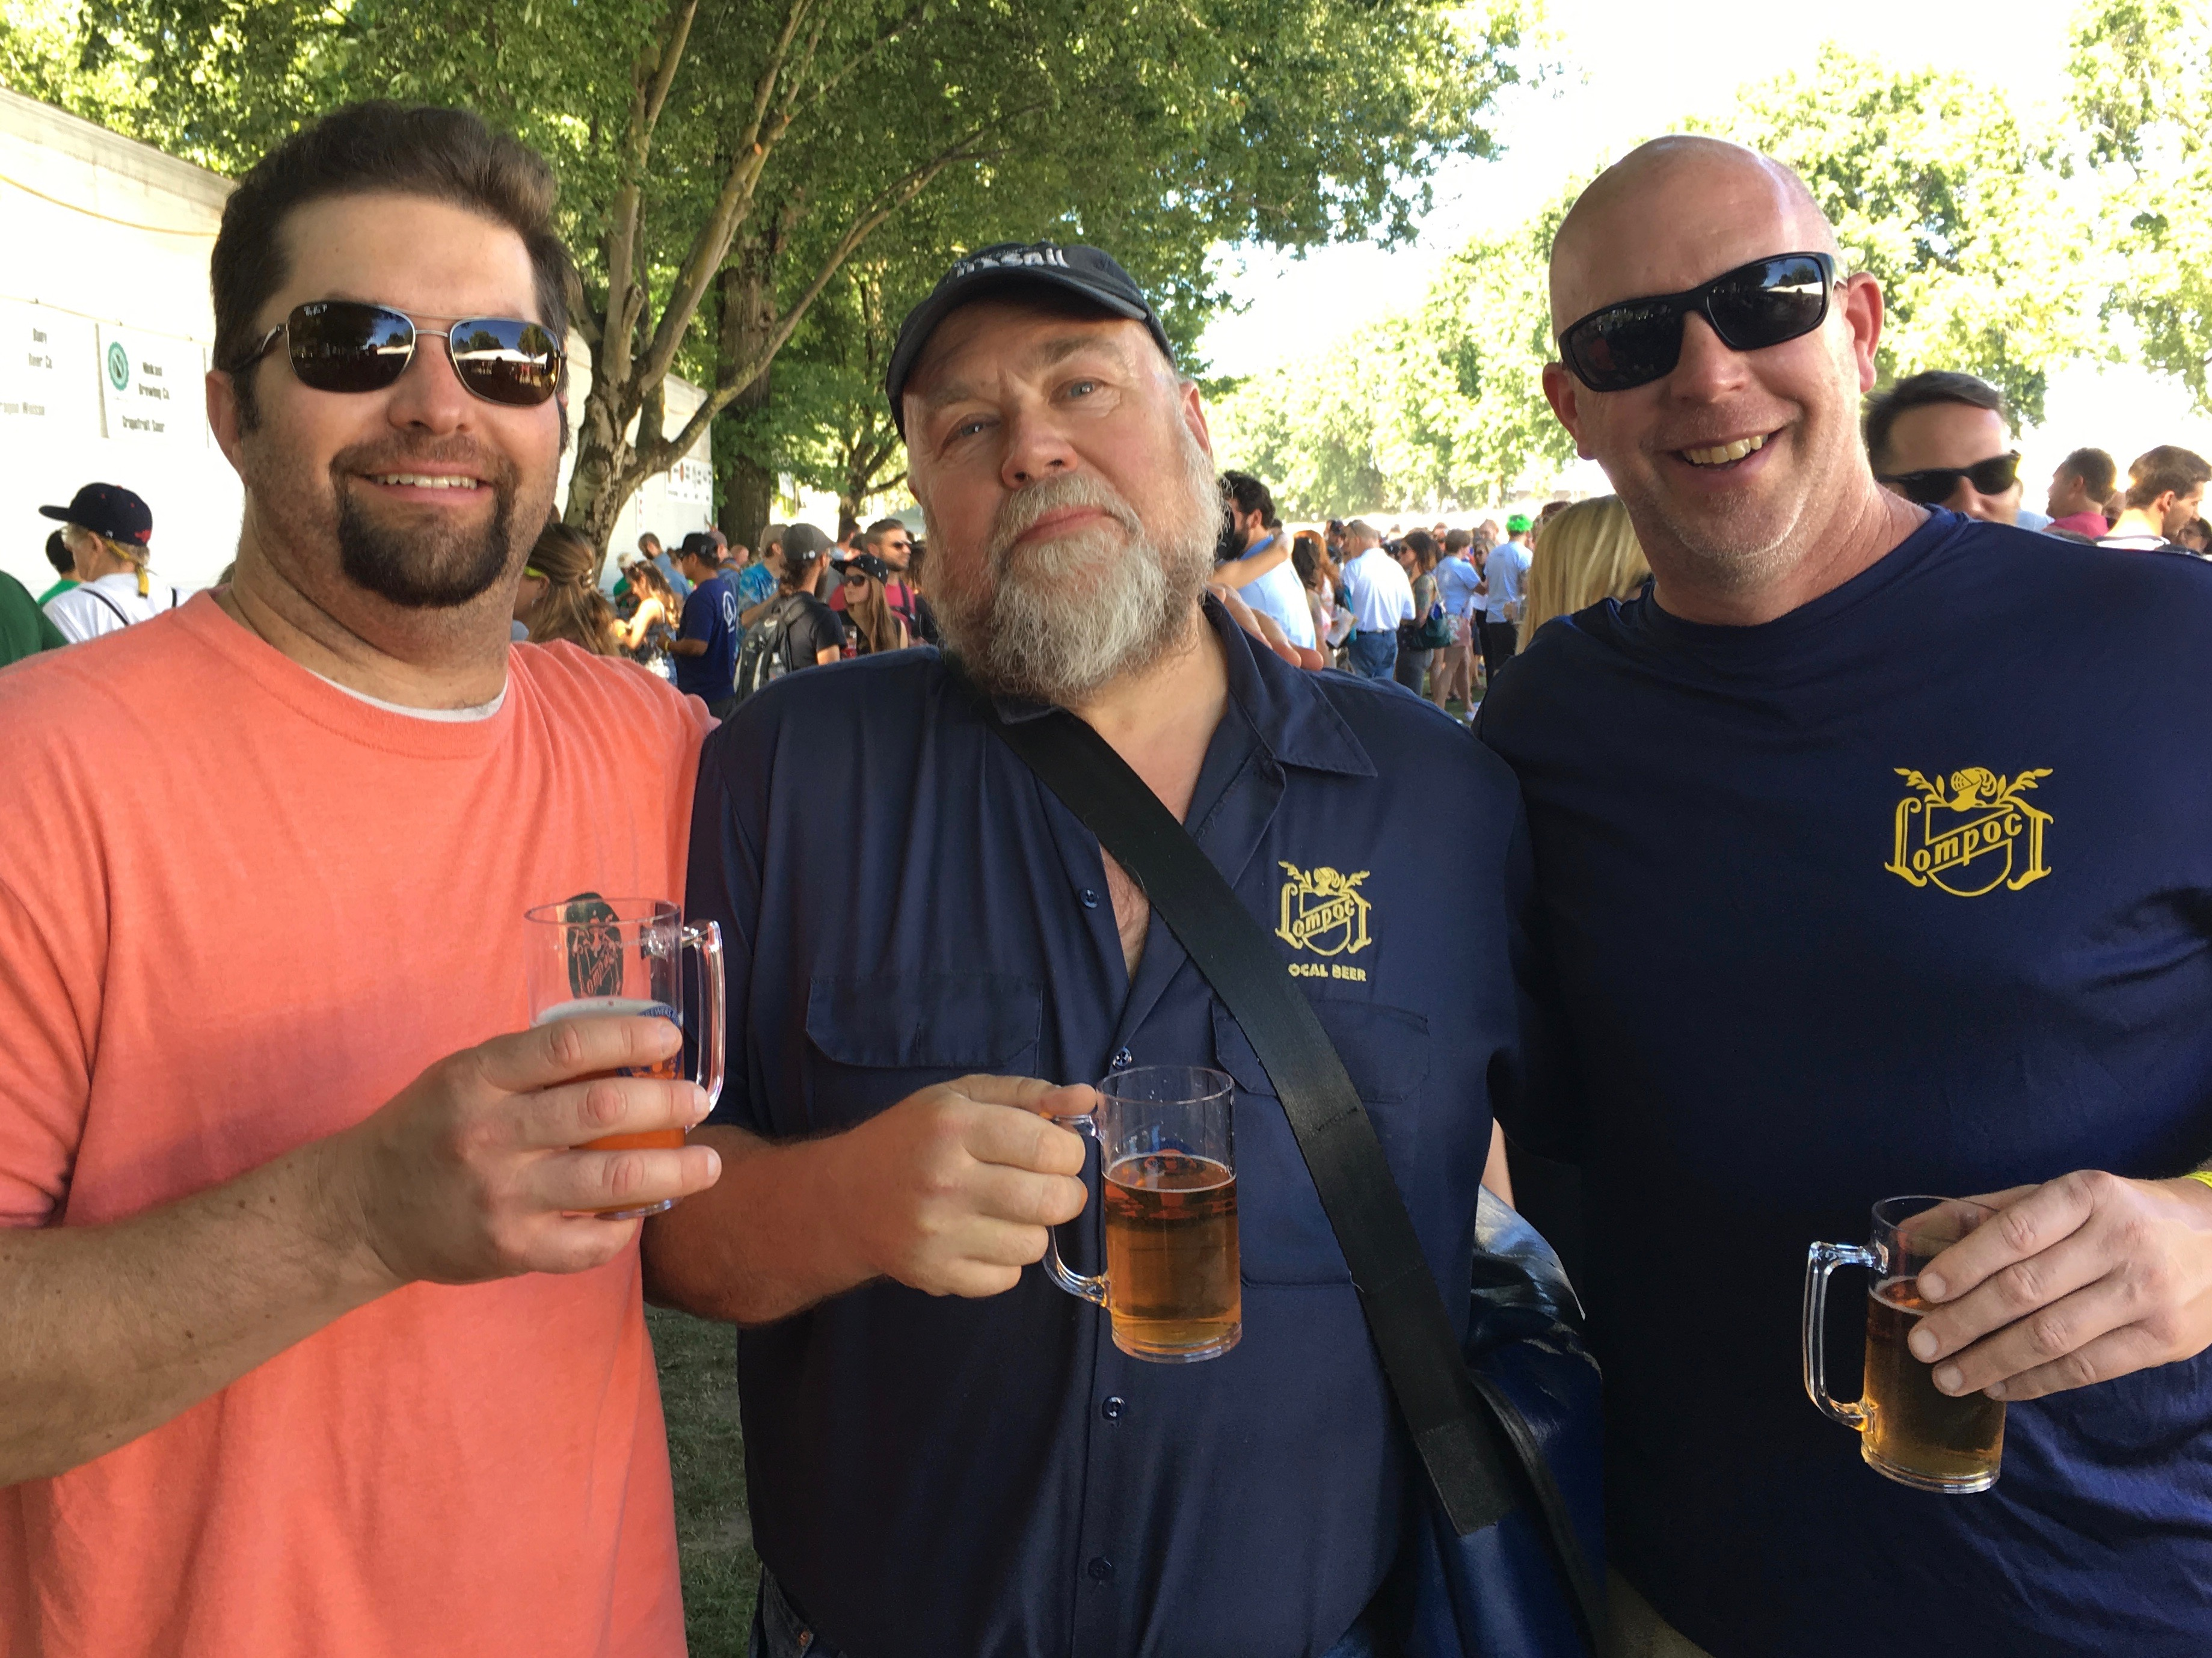 Bryan Keilty (left) and Jerry Fechter (right from Lompoc Brewing surround legendary beer writer John Foyston at the 2016 Oregon Brewers Festival.